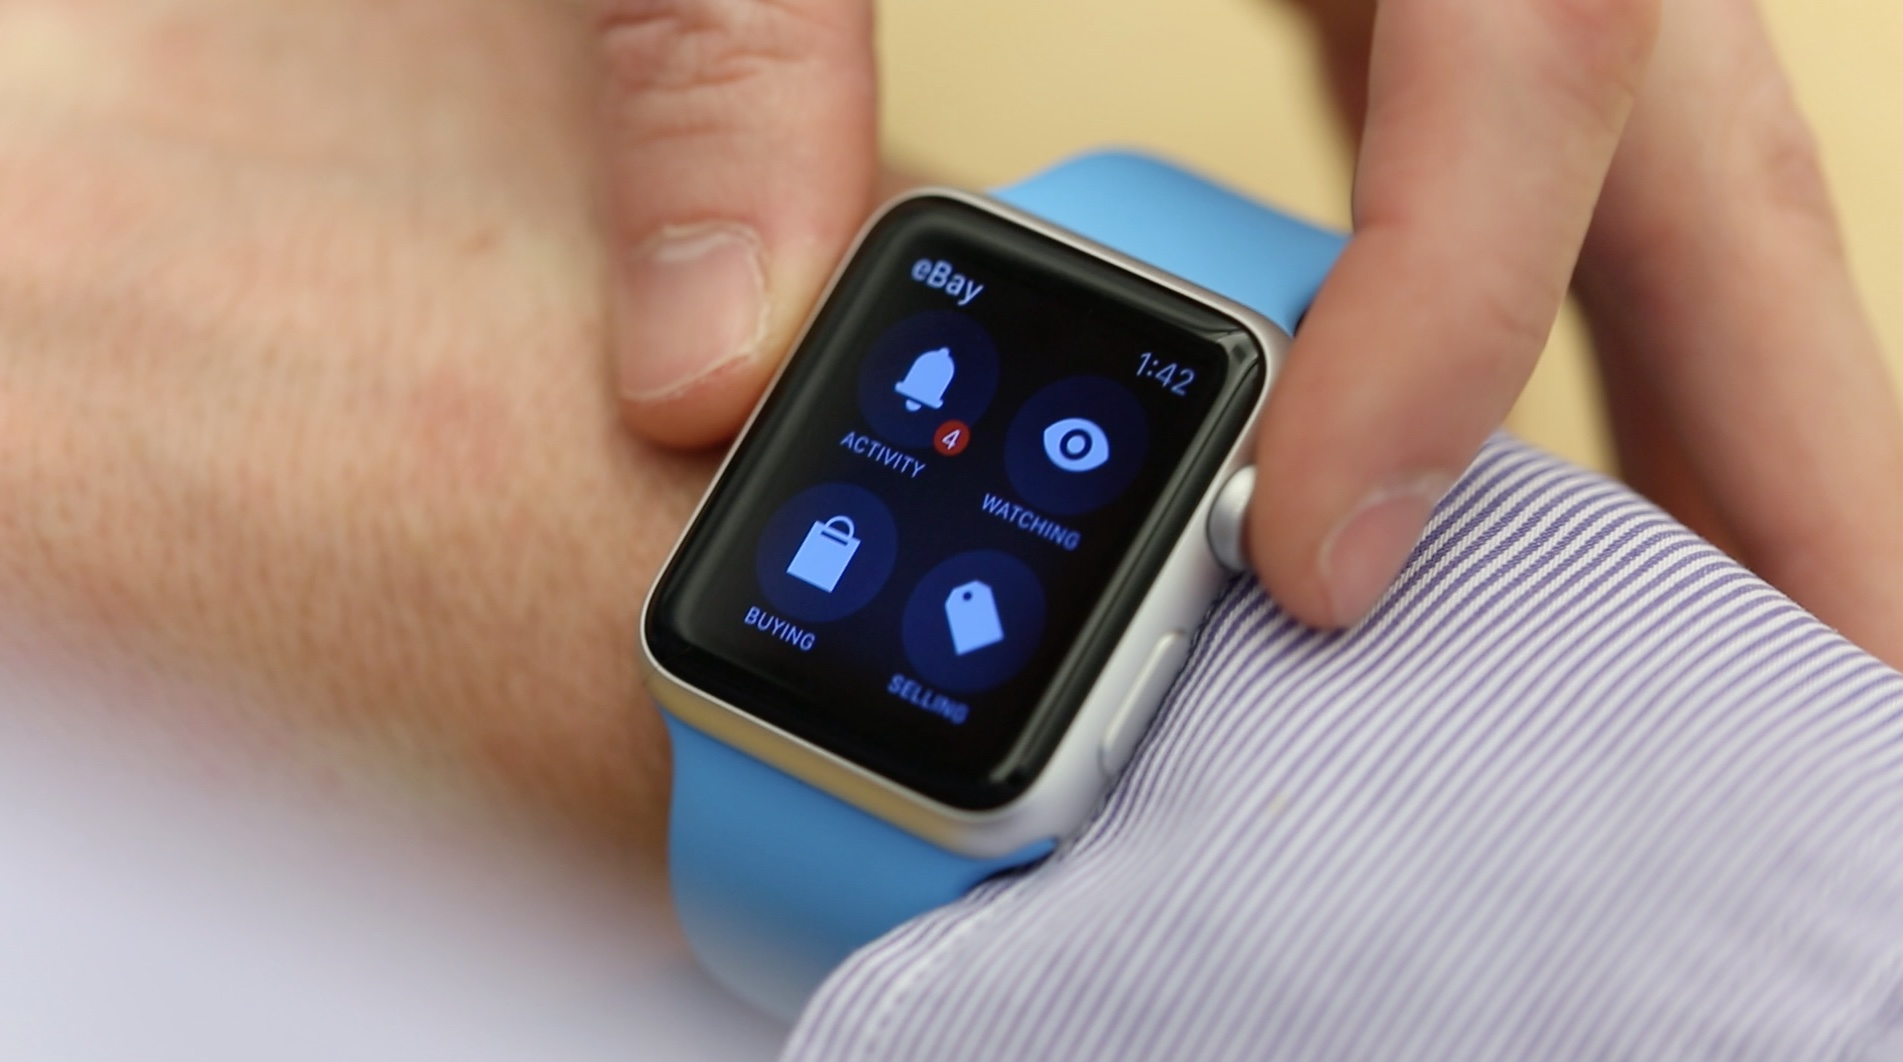 eBay for Apple Watch launches, iOS app gains iPhone 6 and